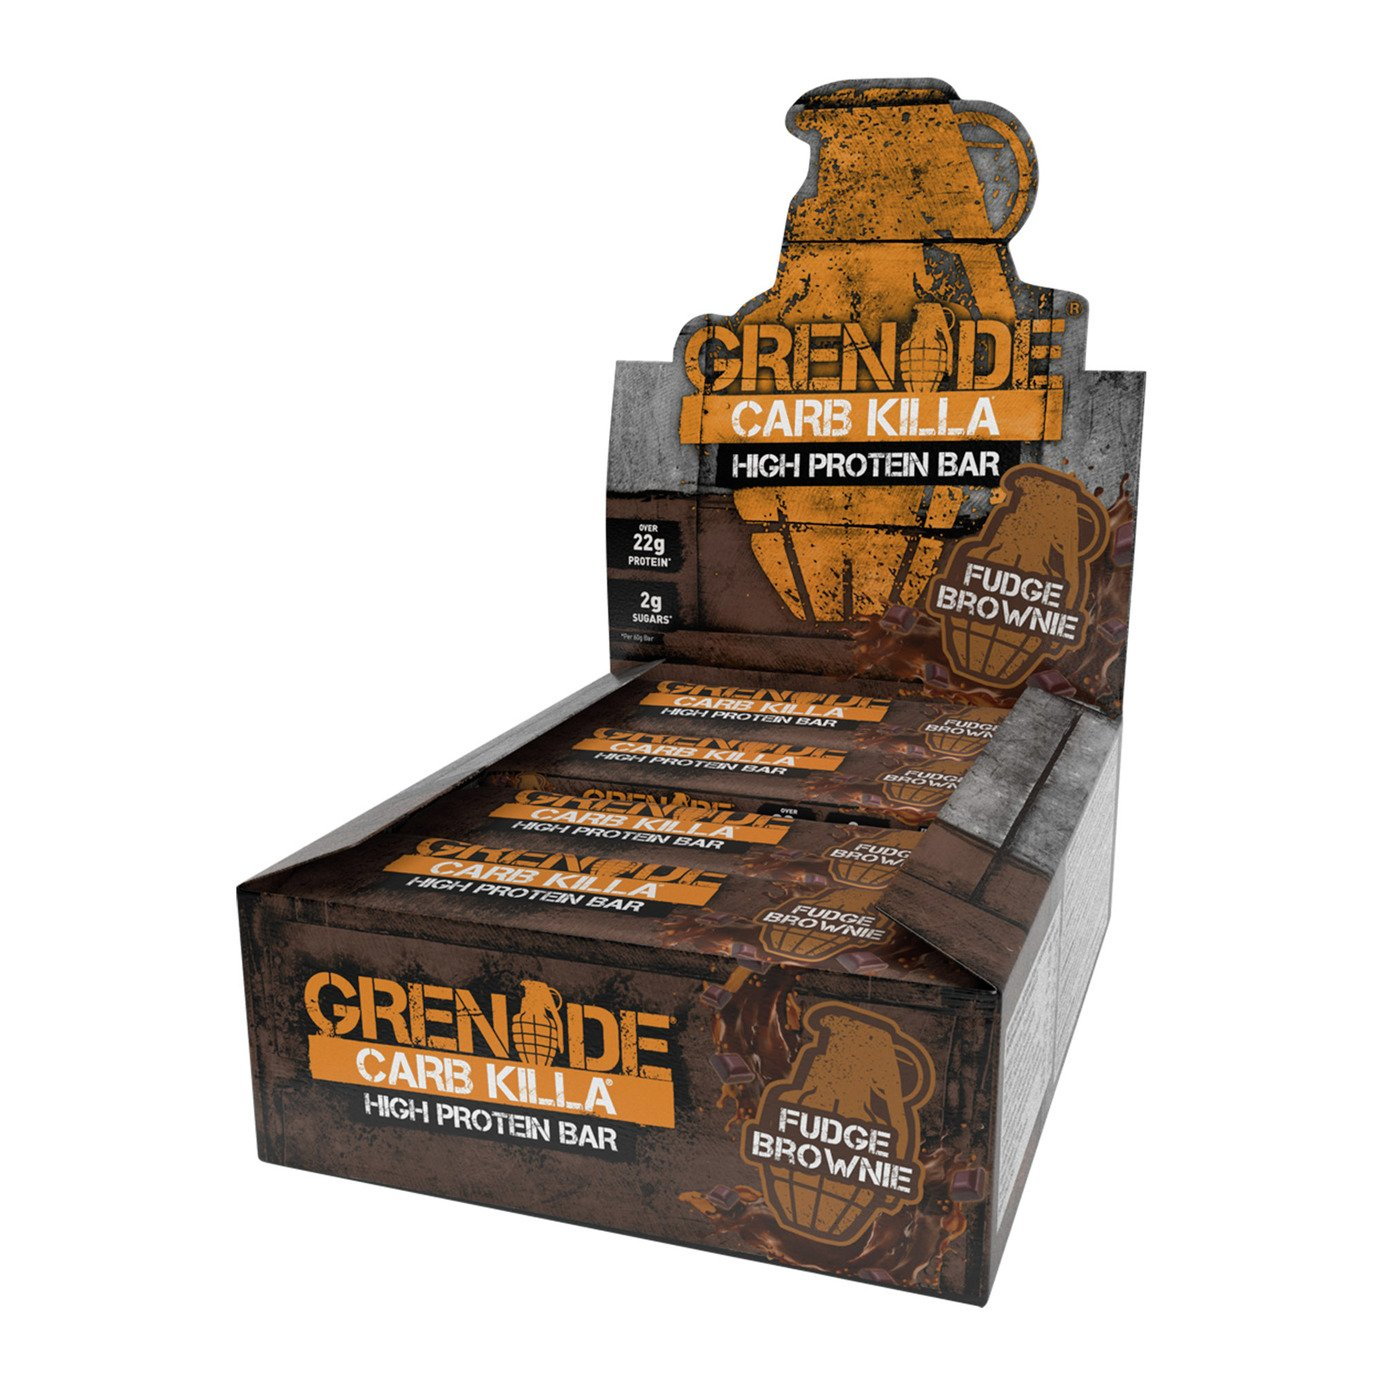 Grenade Carb Killa Fudge Brownie